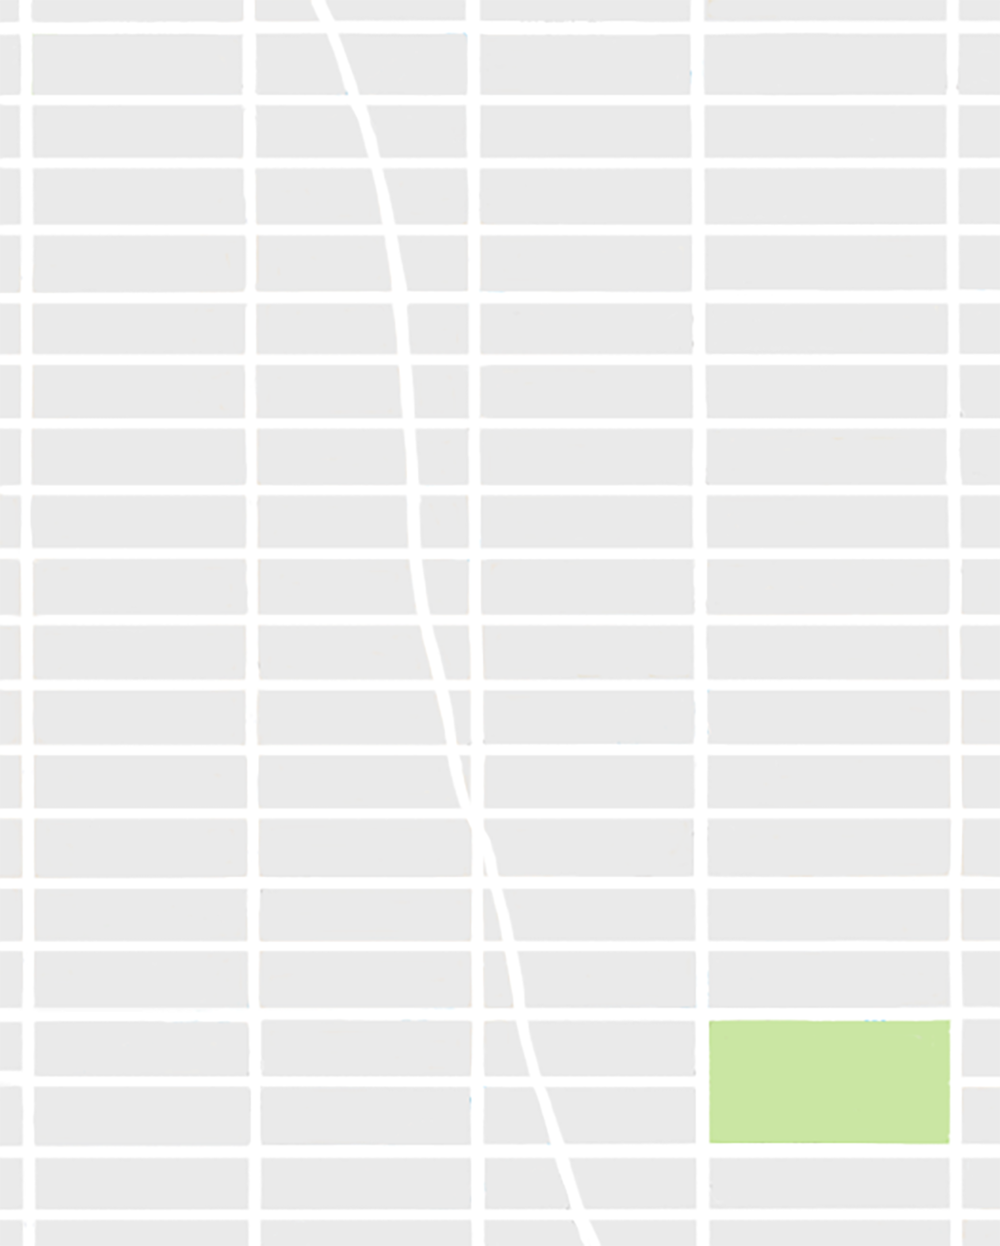 Becco Theatre District Map.png